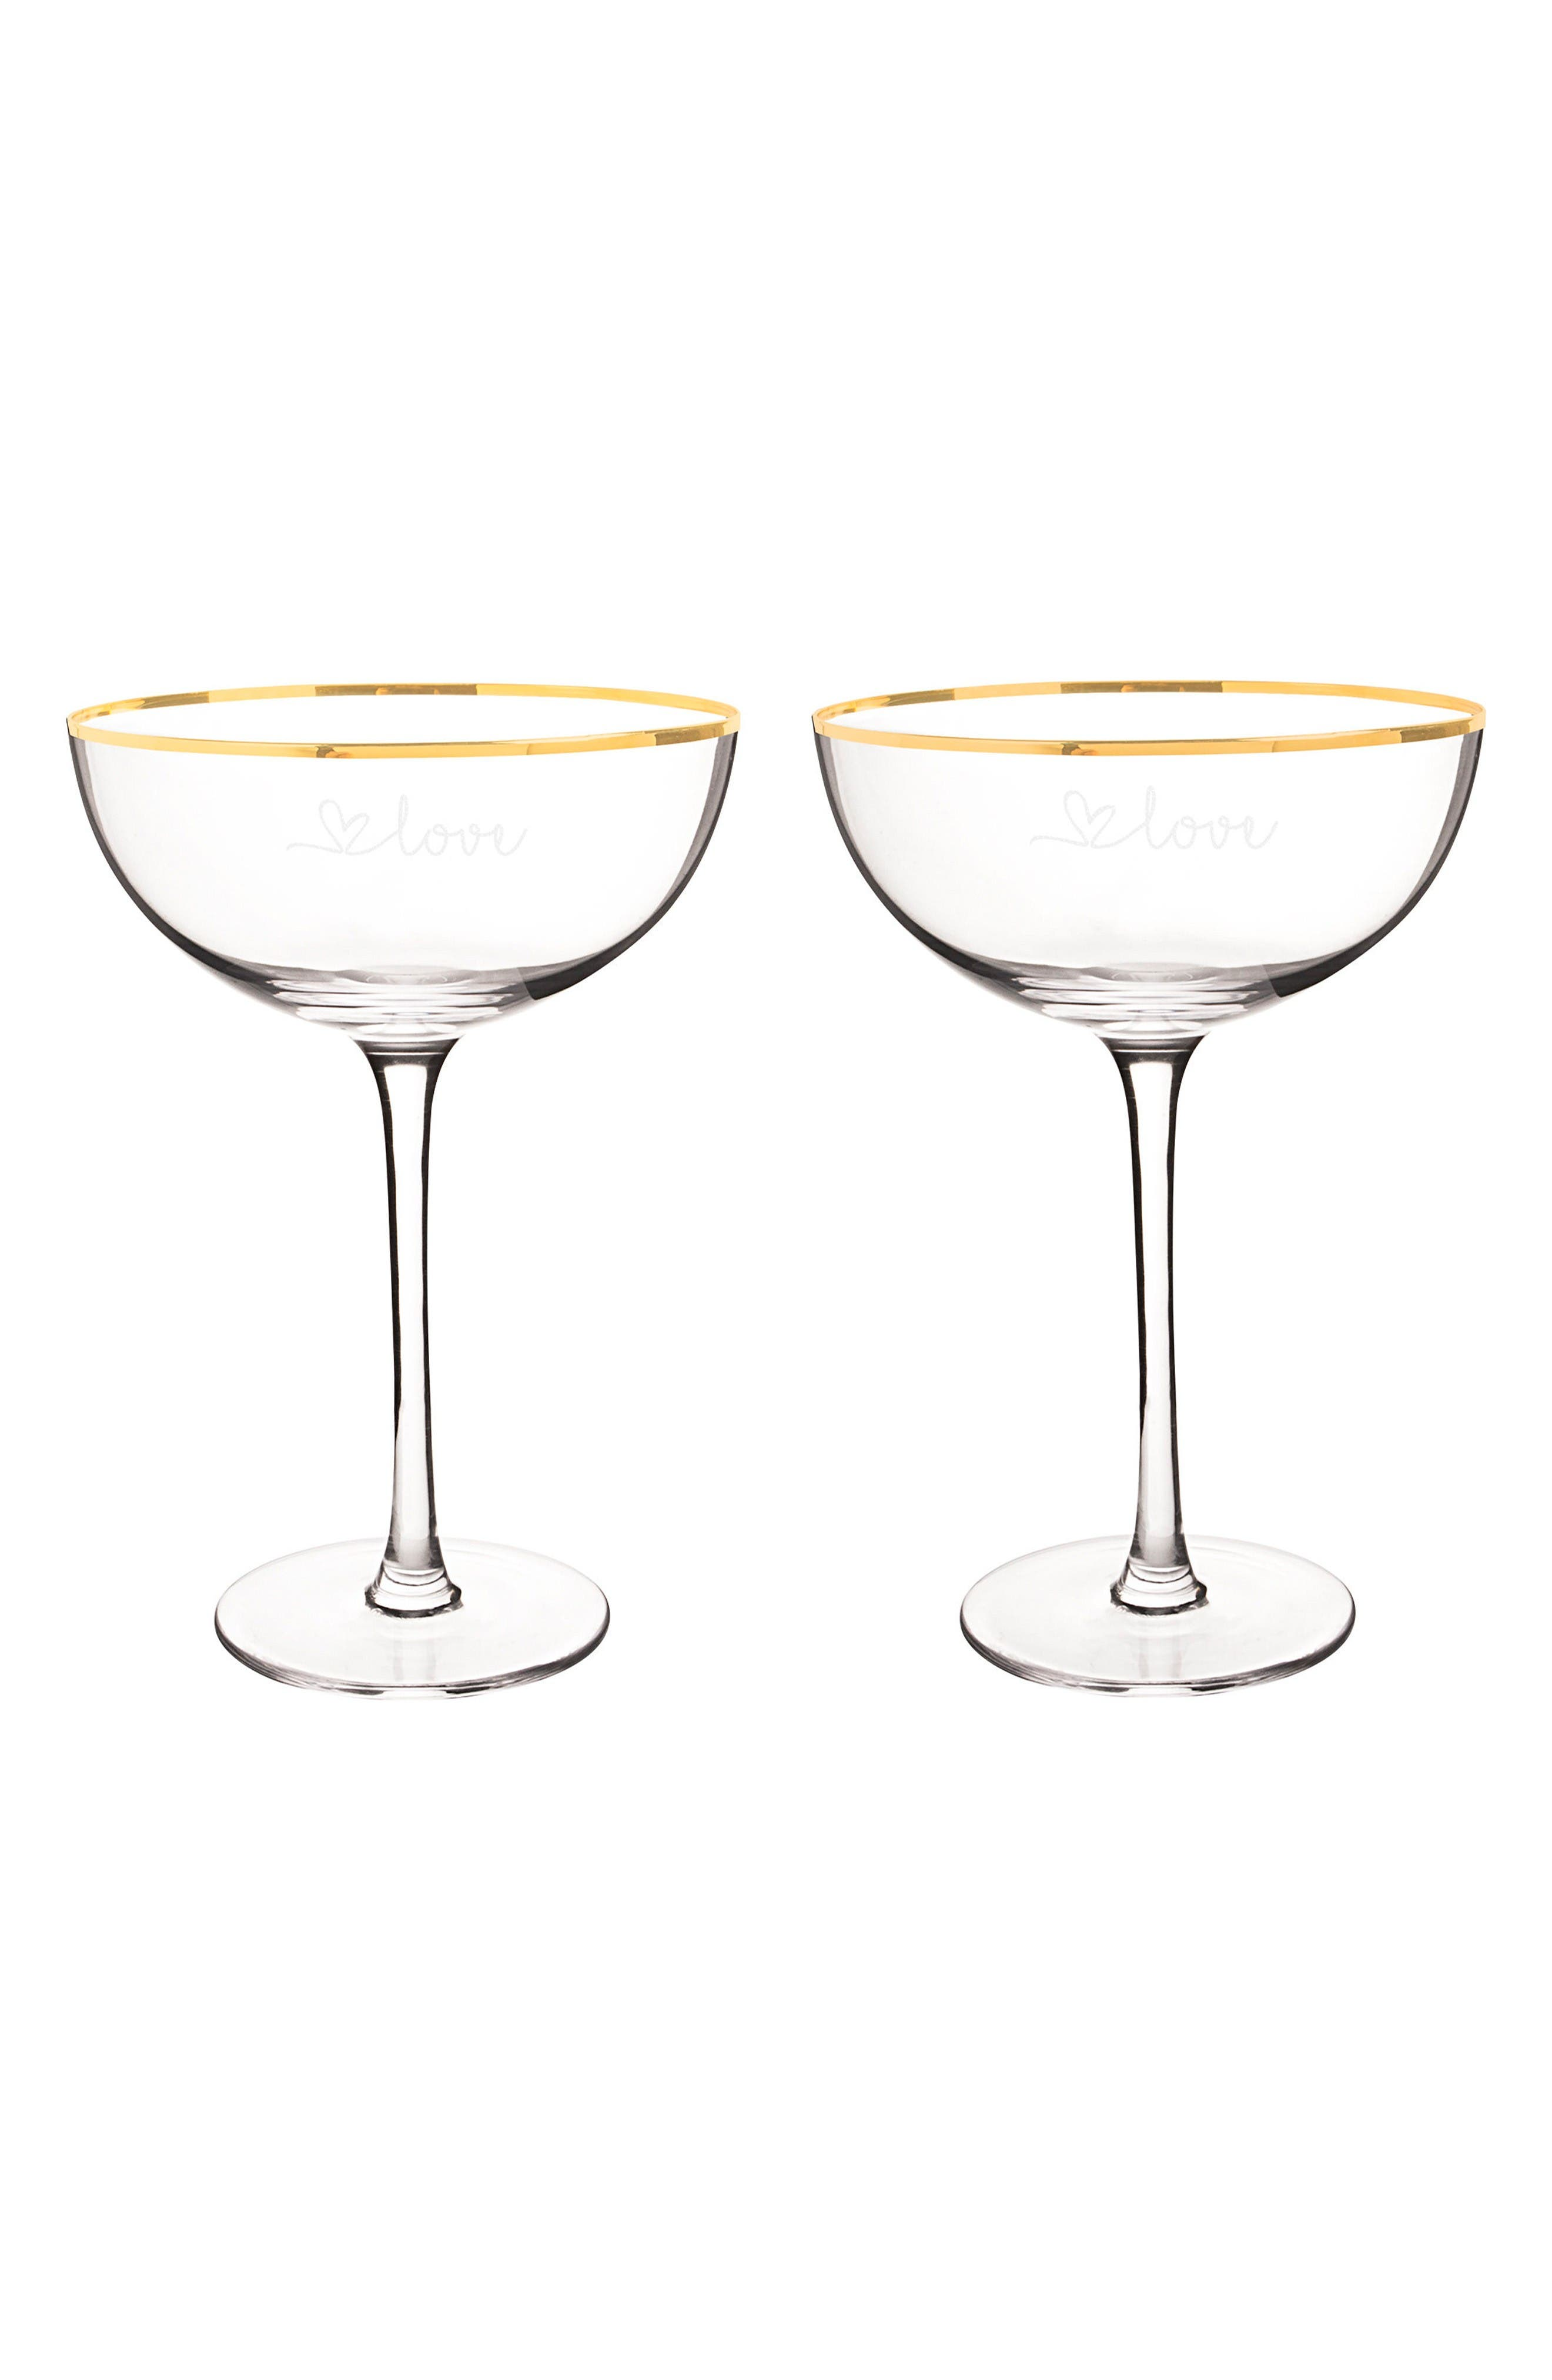 Main Image - Cathy's Concepts Love Set of 2 Champagne Coupe Toasting Glasses